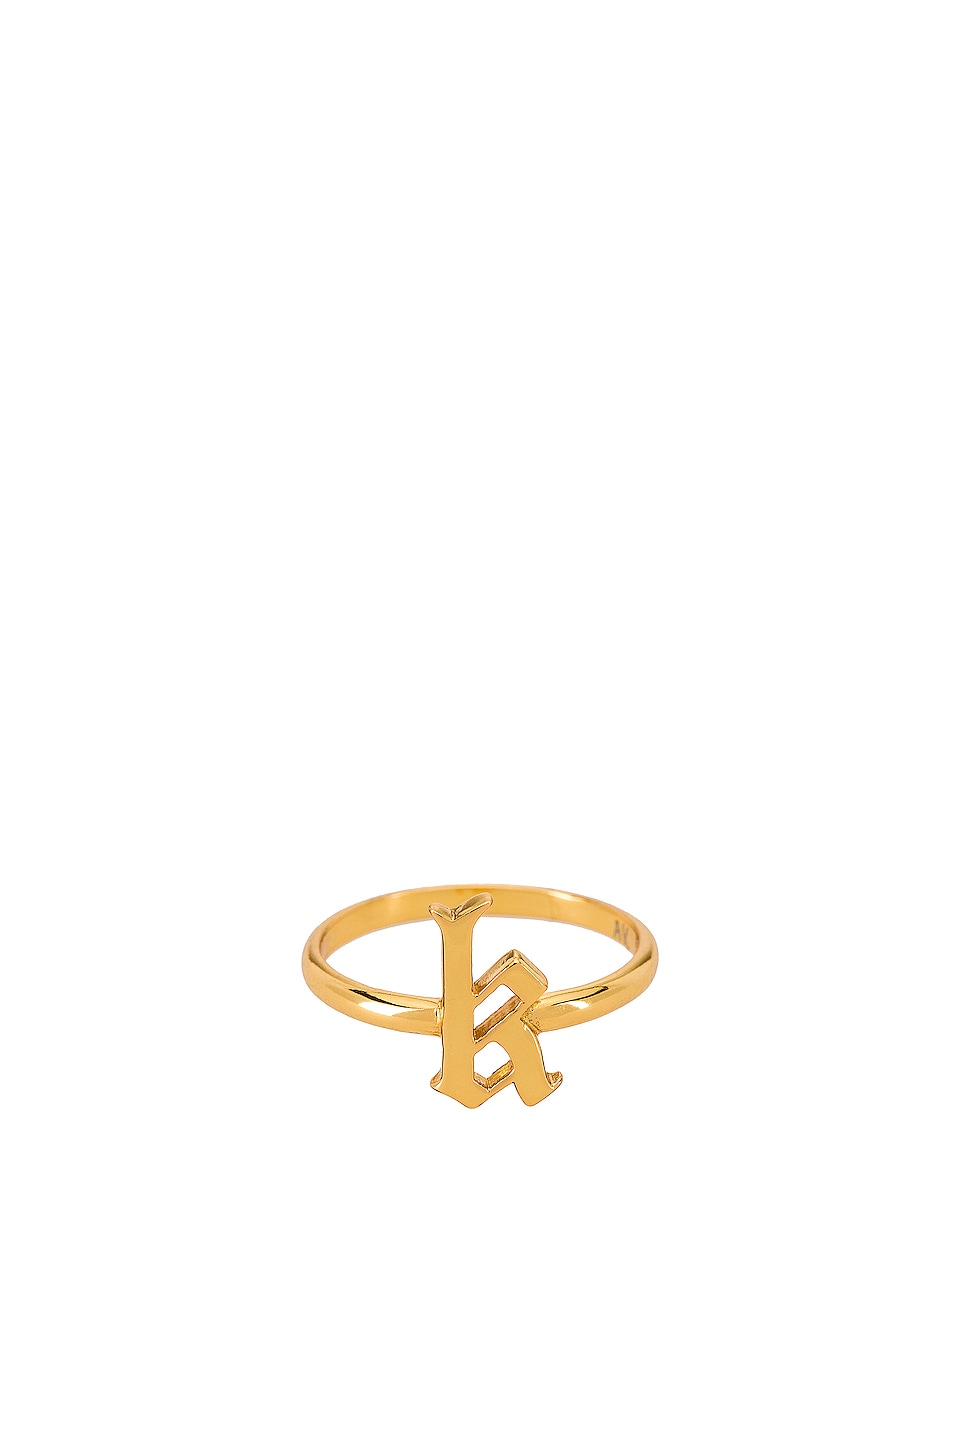 The M Jewelers NY КОЛЬЦО GOTHIC LETTER